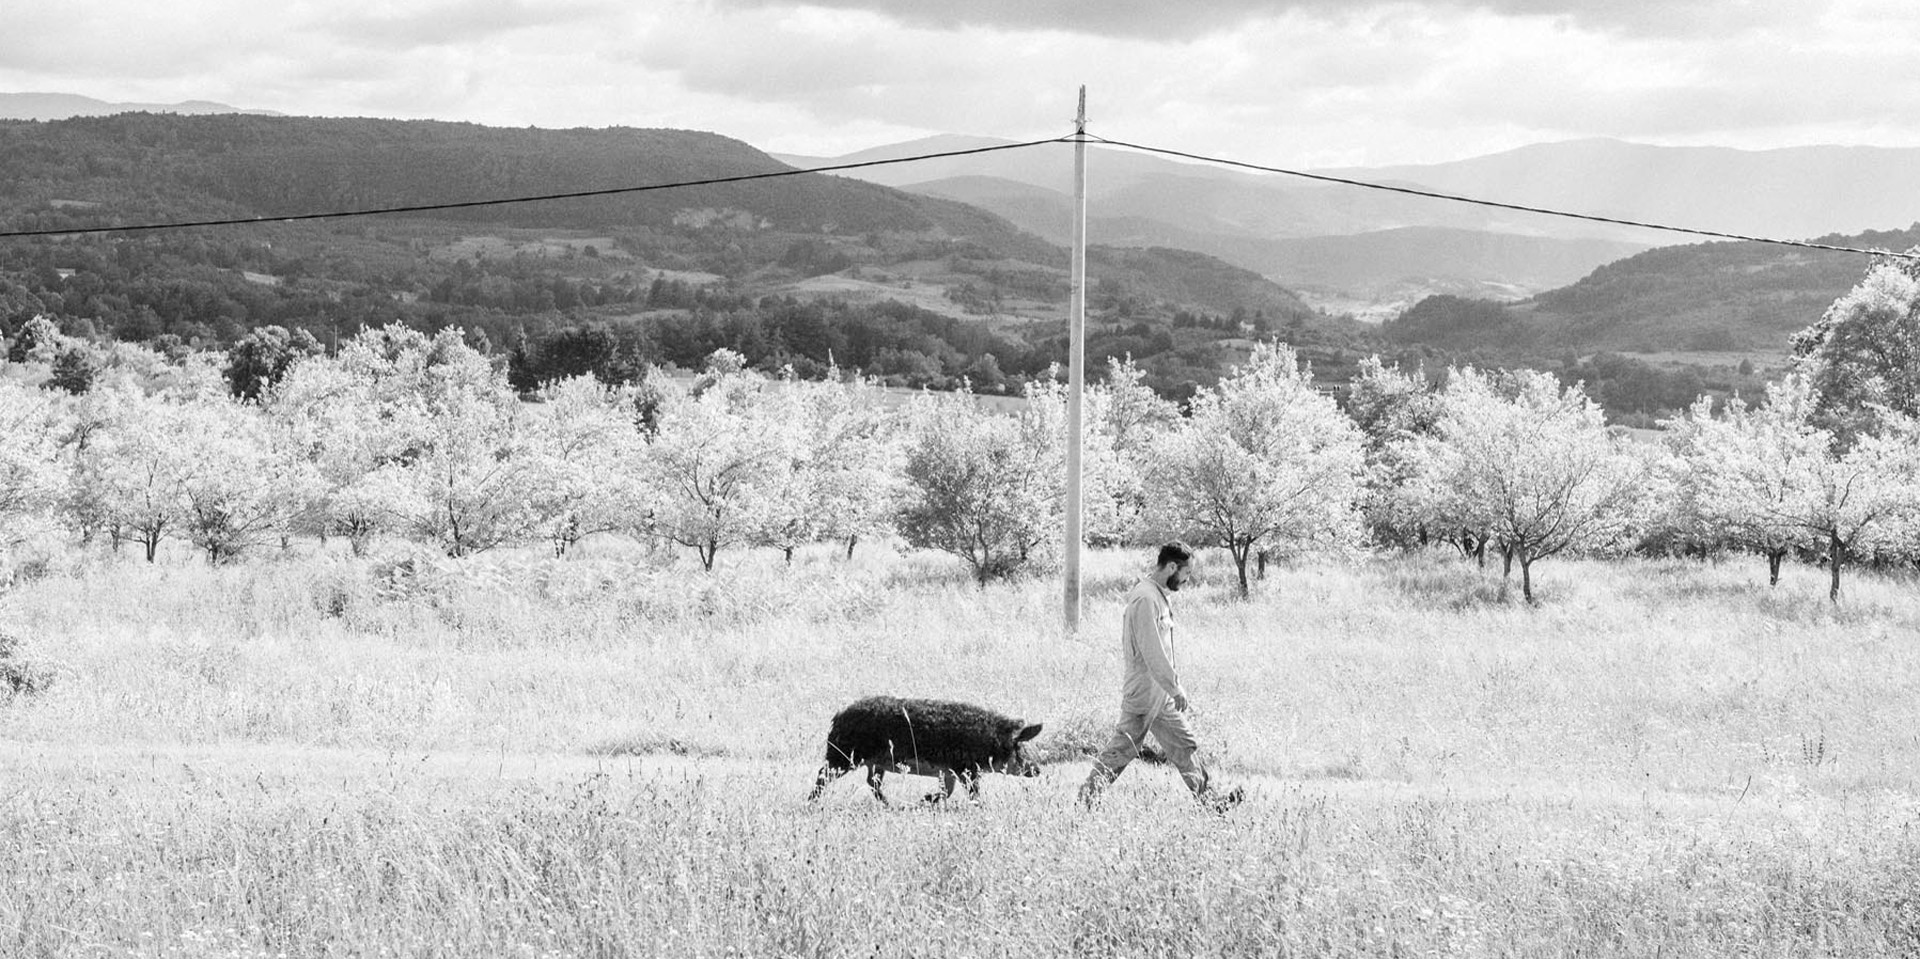 A man walks across scrubland followed by a truffle hog.